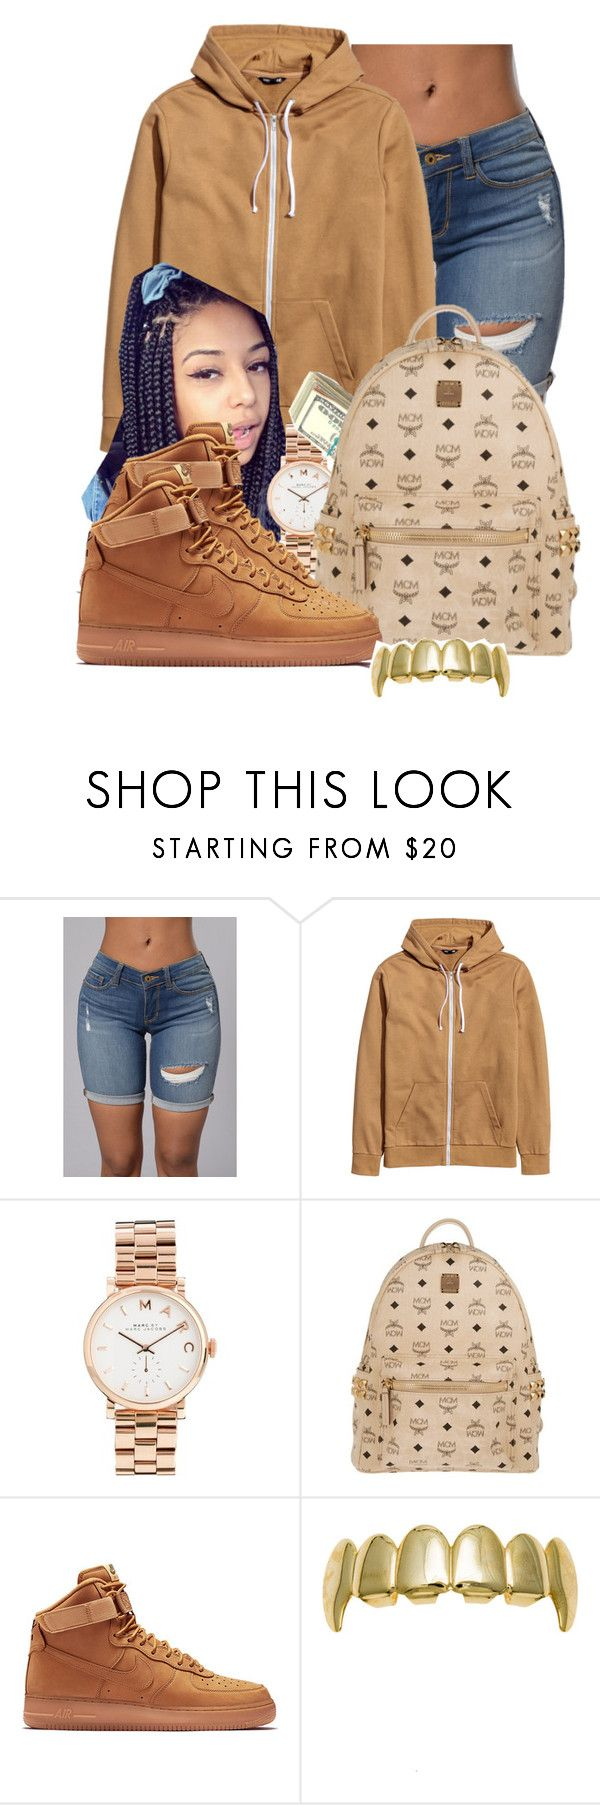 """Flexing on my X...."" by trendsettajay ❤ liked on Polyvore featuring Marc by Marc Jacobs, MCM and NIKE"